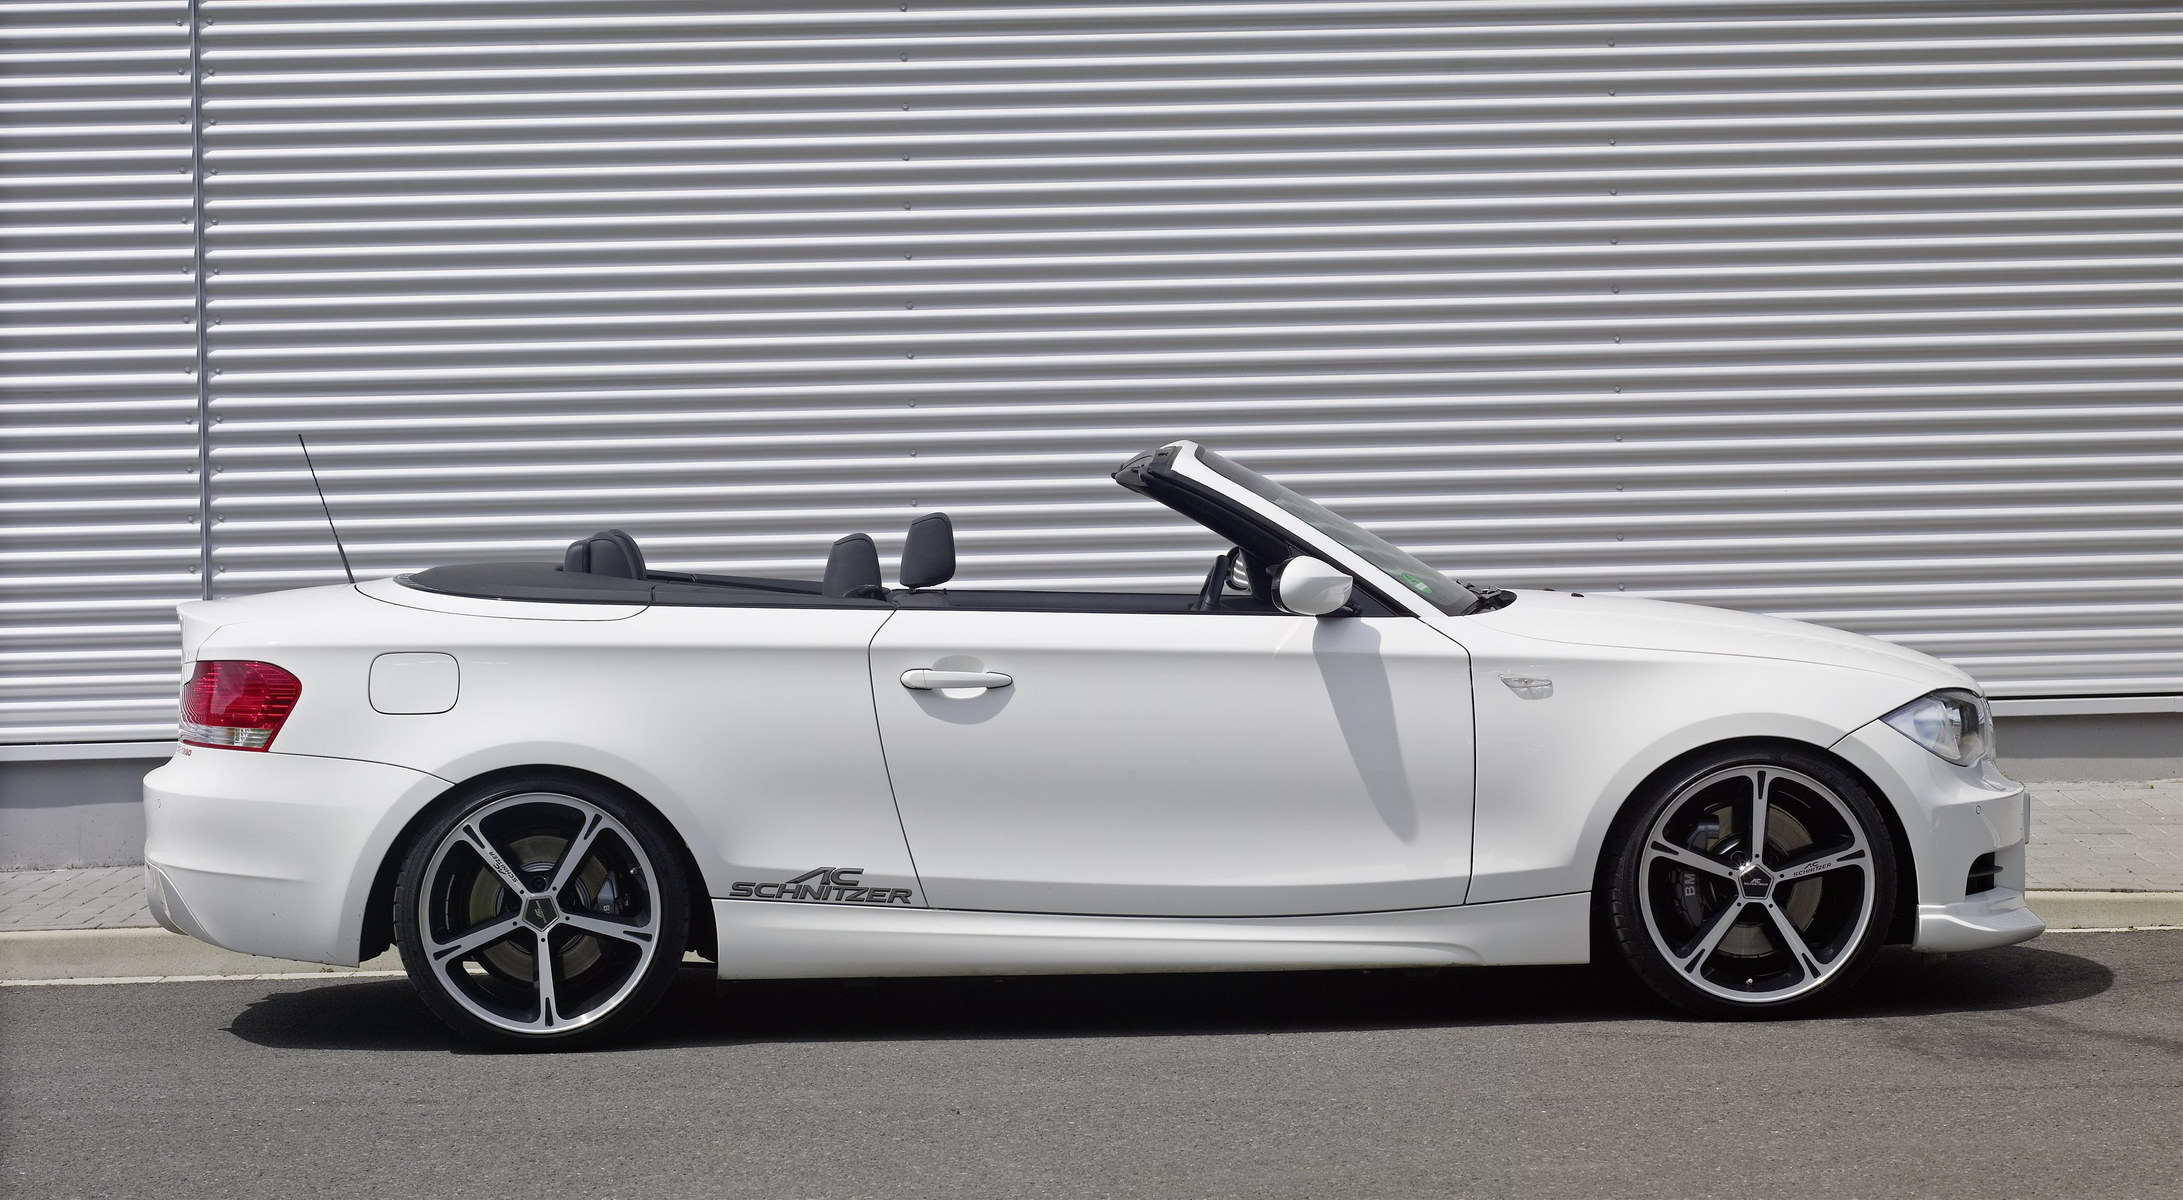 2019 BMW 1 Series Cabrio photo - 5